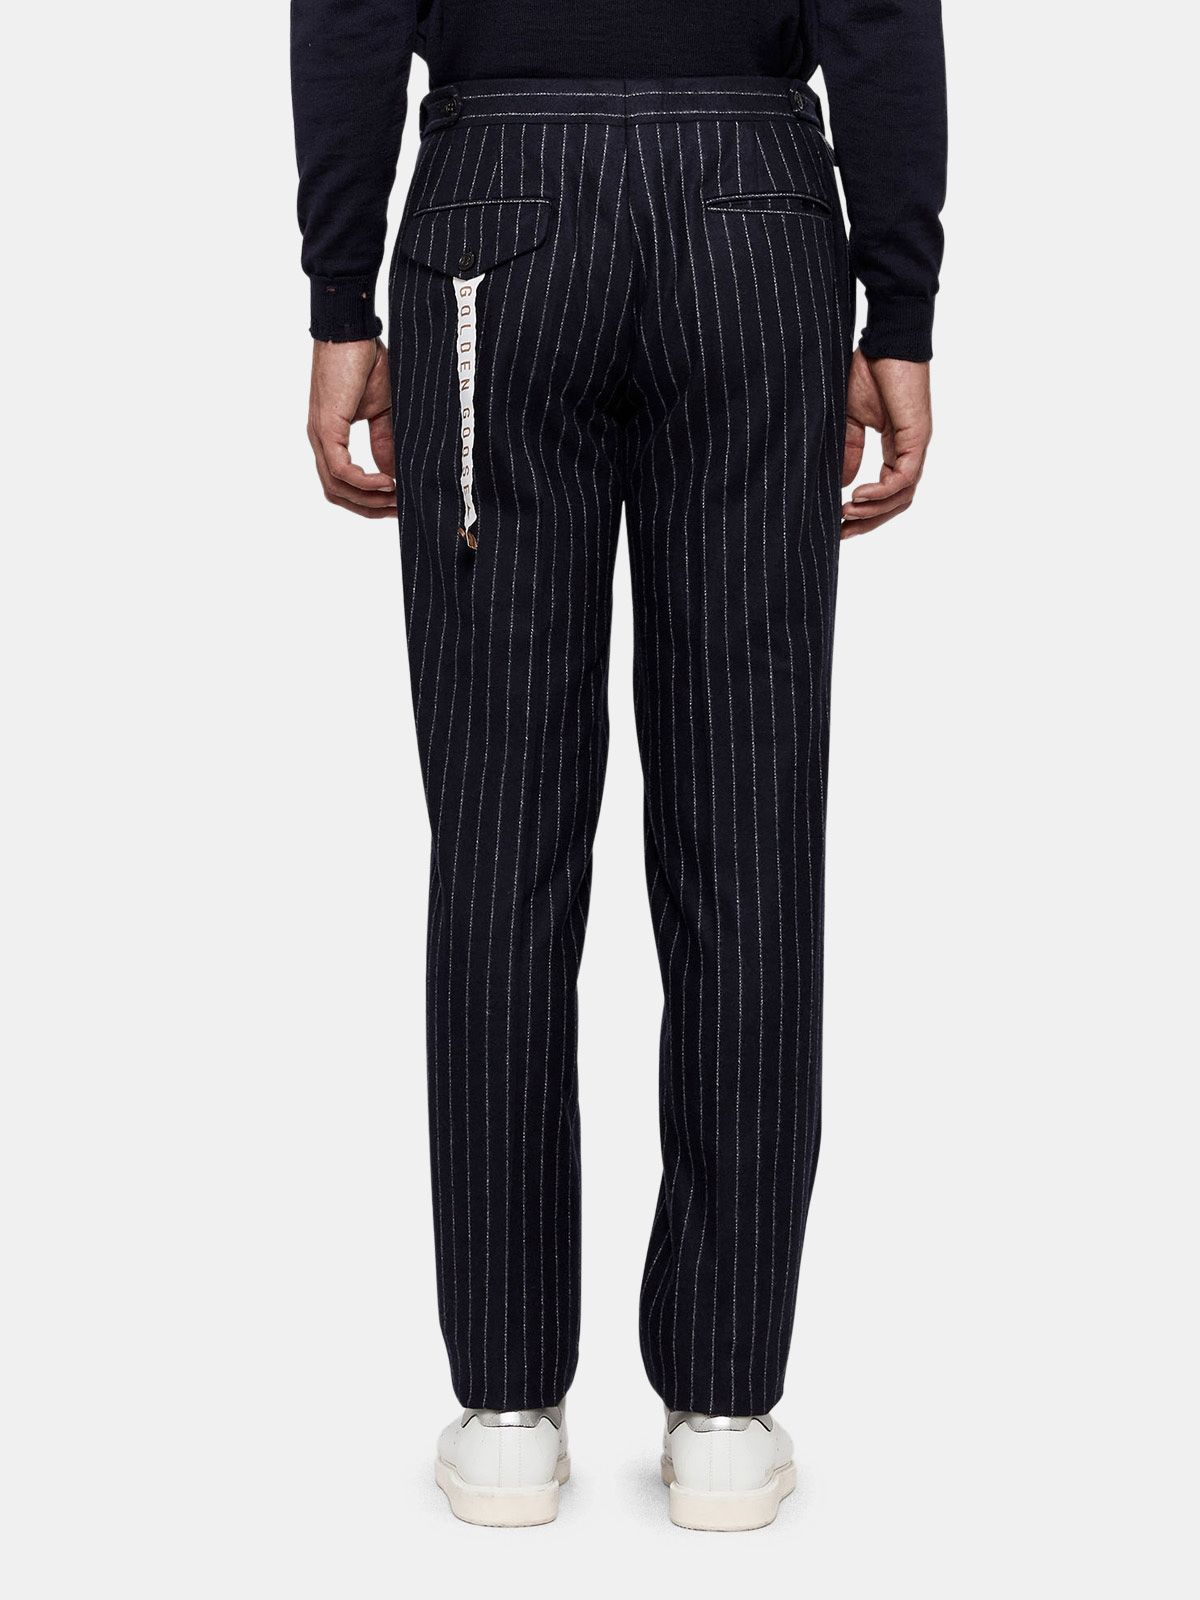 Golden Goose - Seiji trousers in wool with adjustable waist in